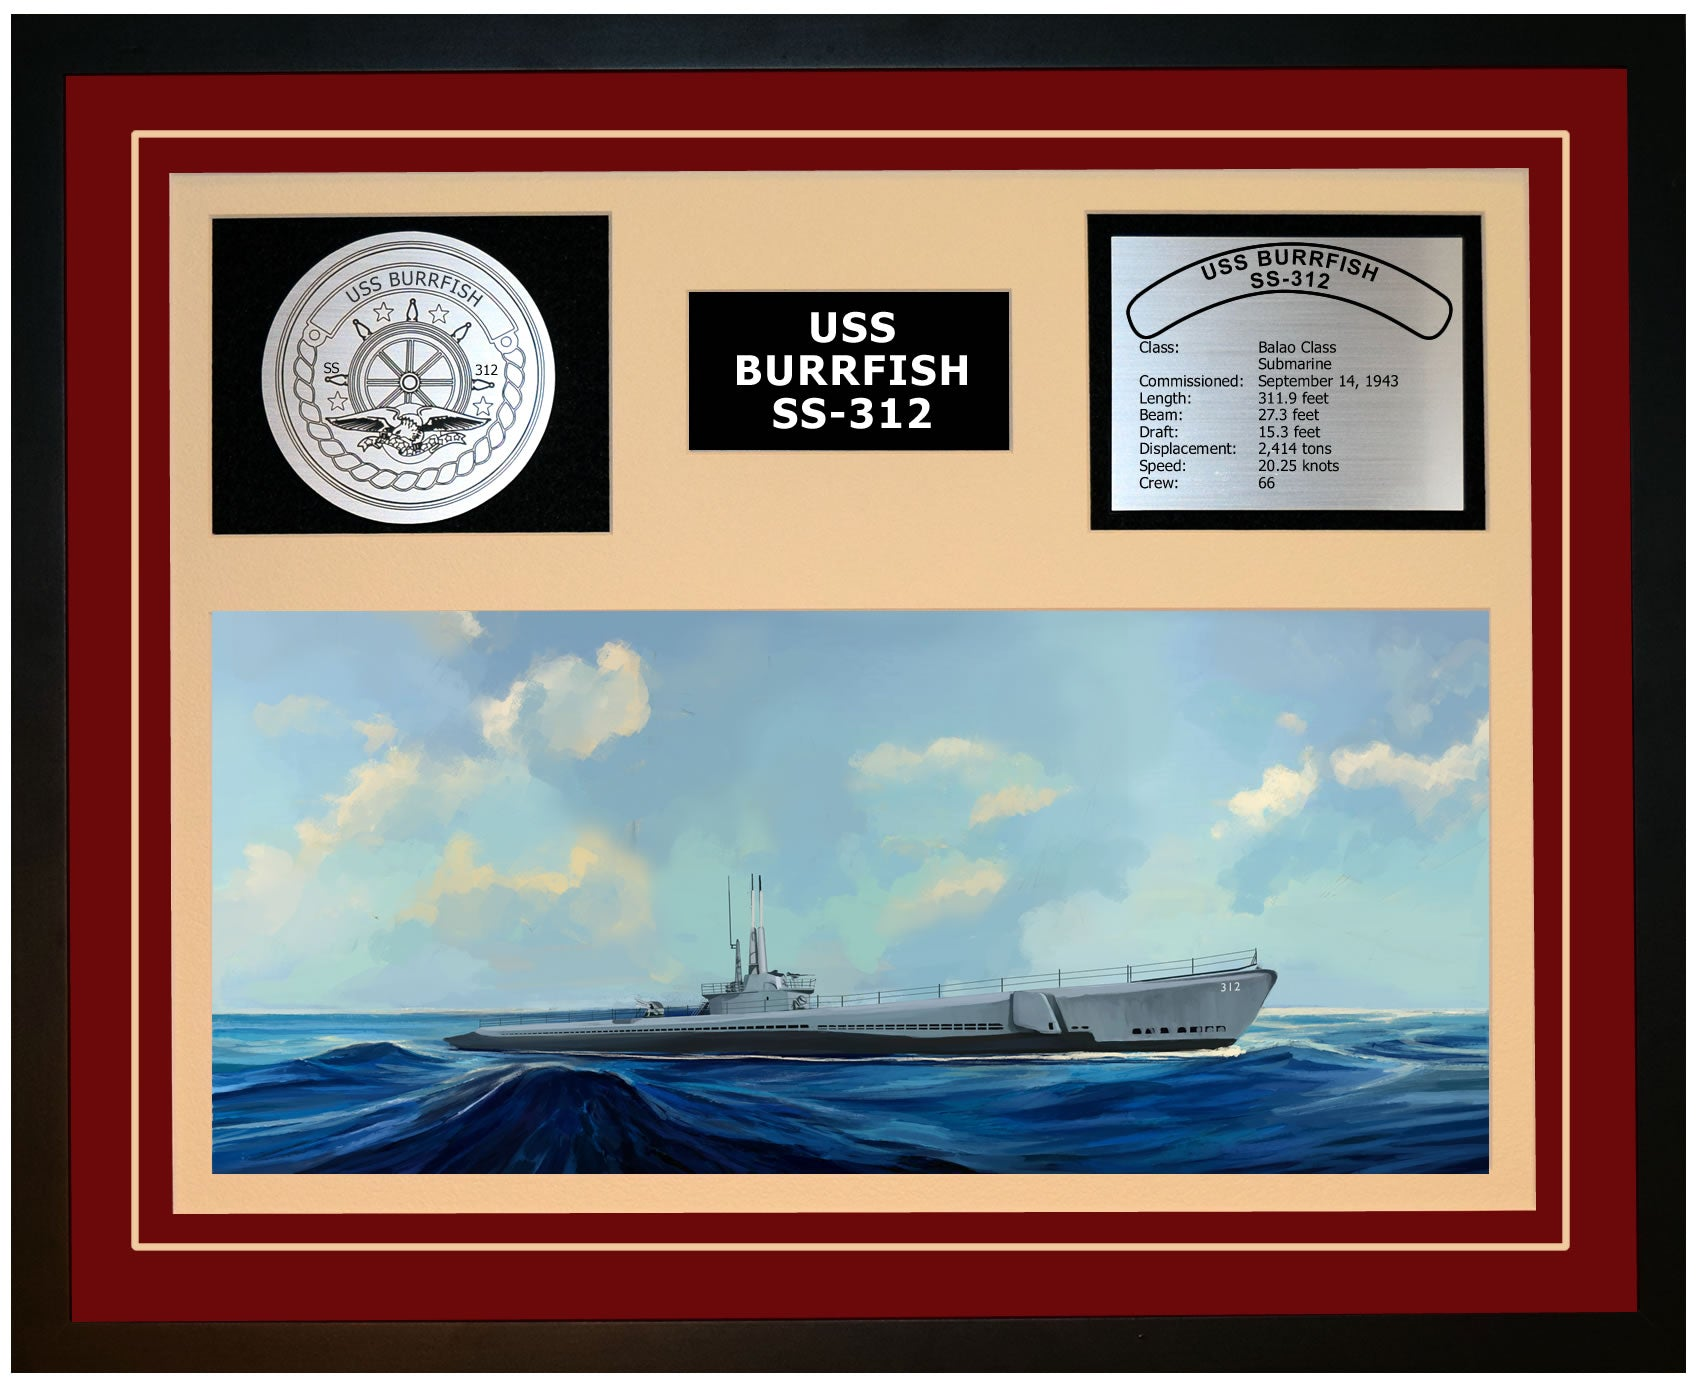 USS BURRFISH SS-312 Framed Navy Ship Display Burgundy